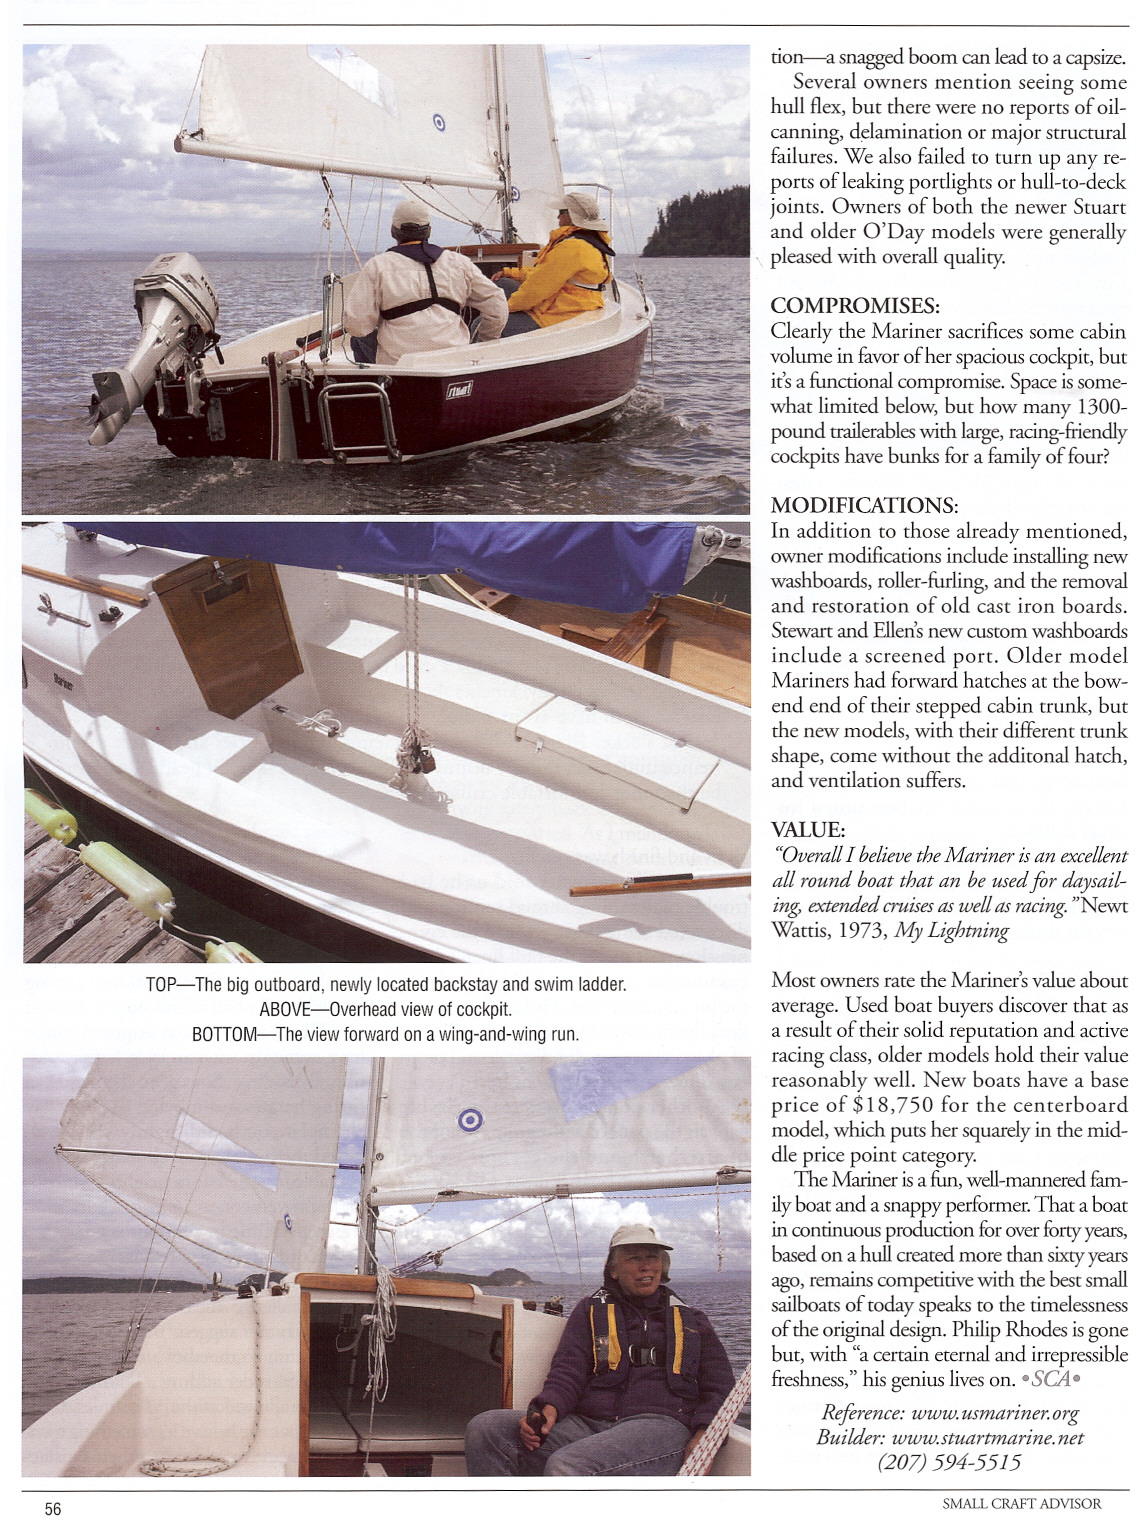 Small Craft Advisor_January_February_2008_No_49_Page_6.jpg